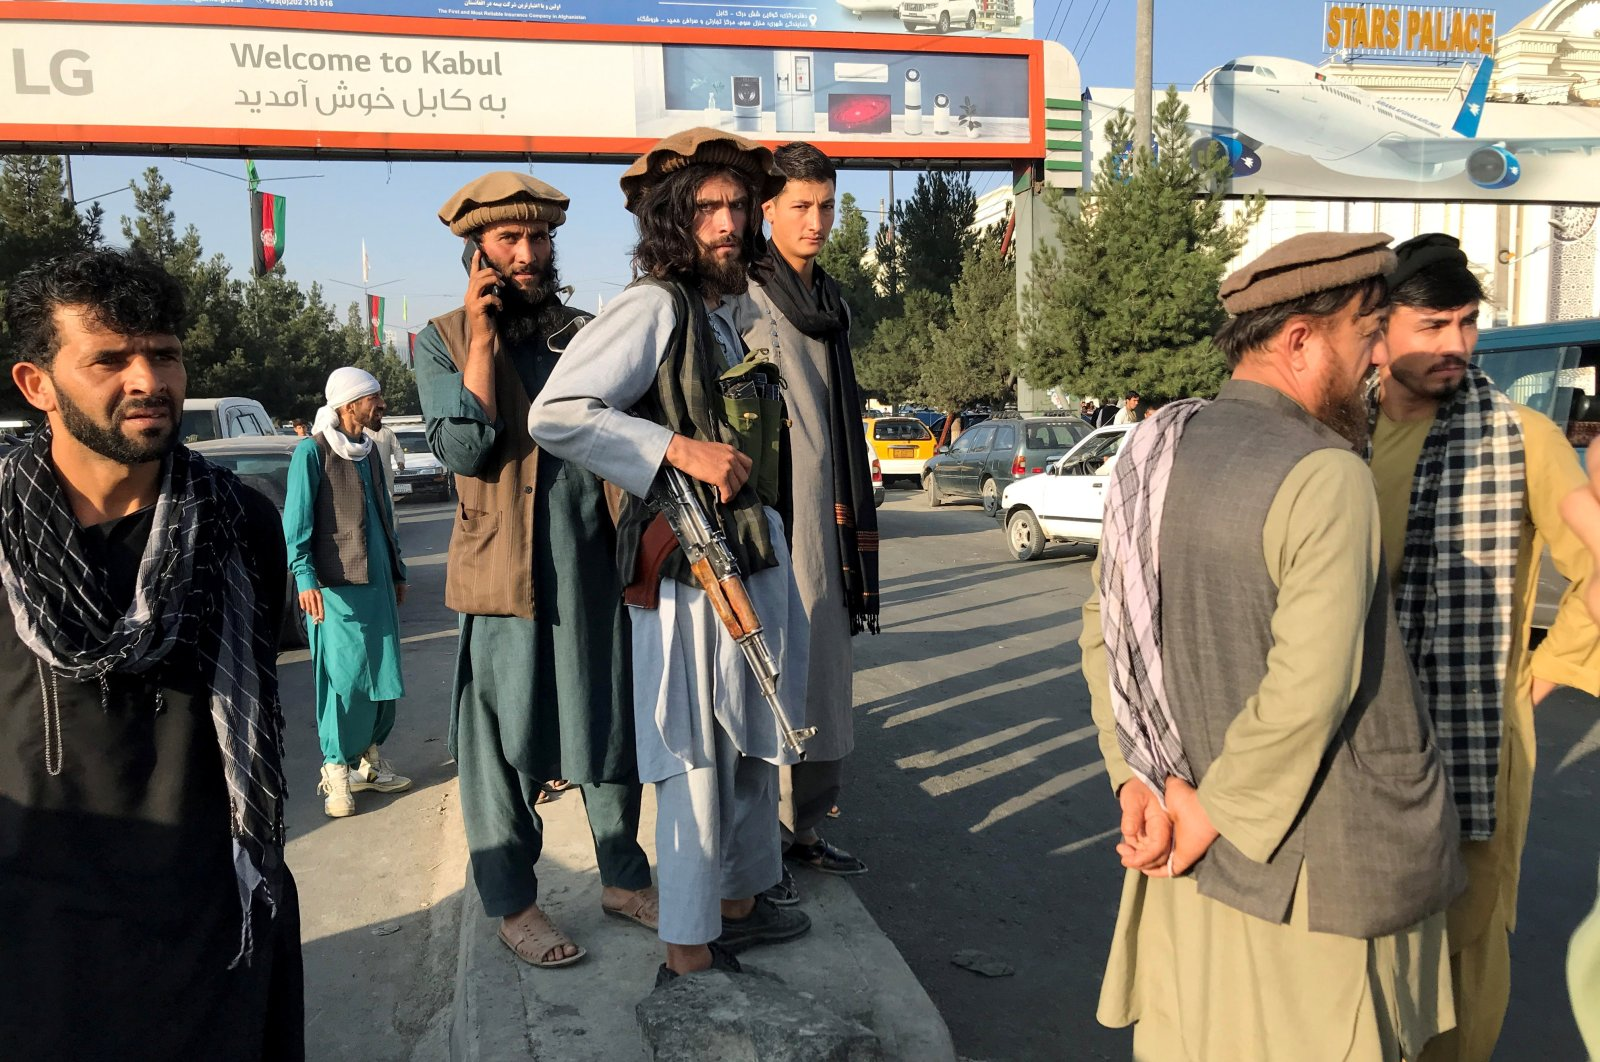 Taliban fighters stand outside Hamid Karzai International Airport in Kabul, Afghanistan, Aug. 16, 2021. (Reuters Photo)